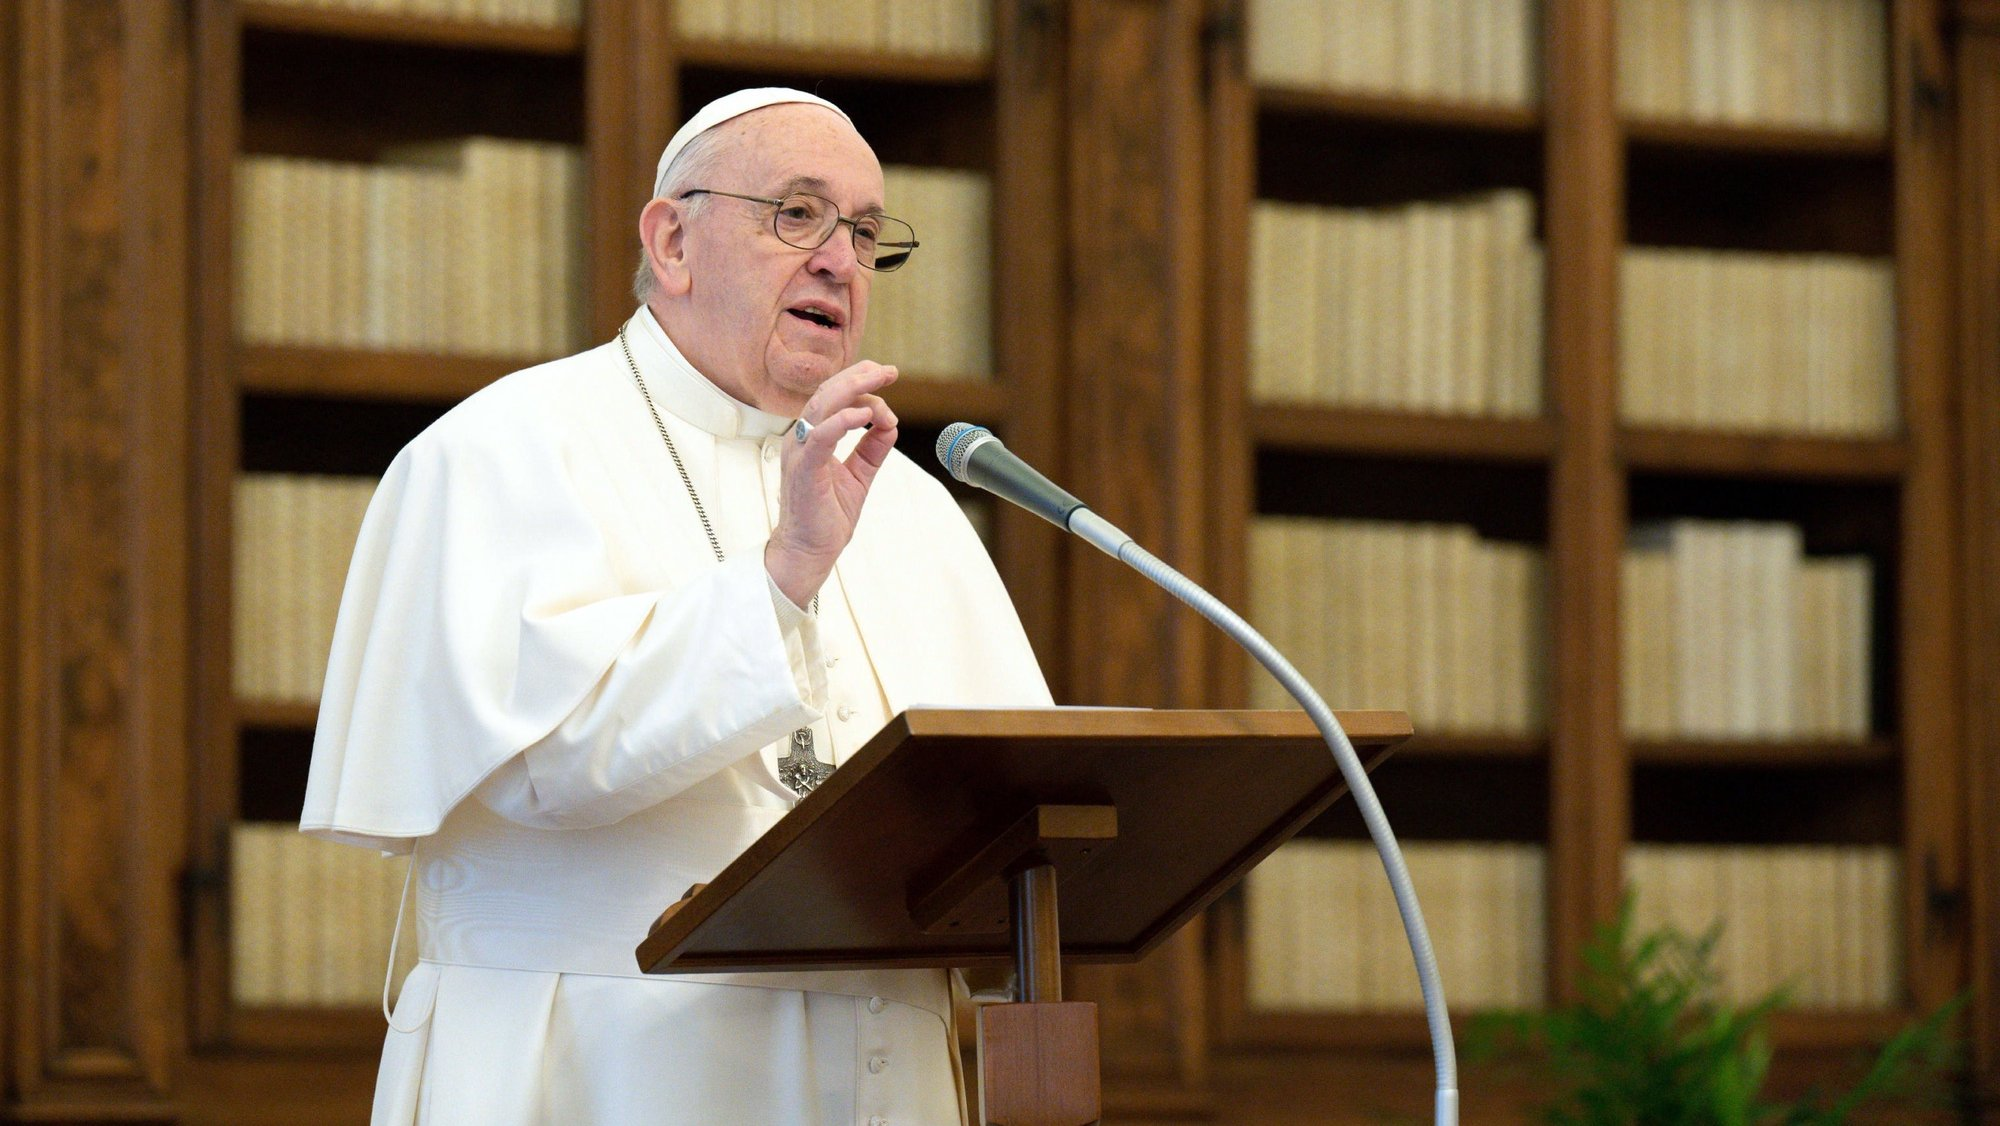 epa08945780 A handout picture provided by the Vatican Media shows Pope Francis Pope delivering a live-streamed weekly Angelus prayer from the Apostolic Palace's library at The Vatican, 17 January 2021 (issued 18 January 2021).  EPA/VATICAN MEDIA HANDOUT  HANDOUT EDITORIAL USE ONLY/NO SALES